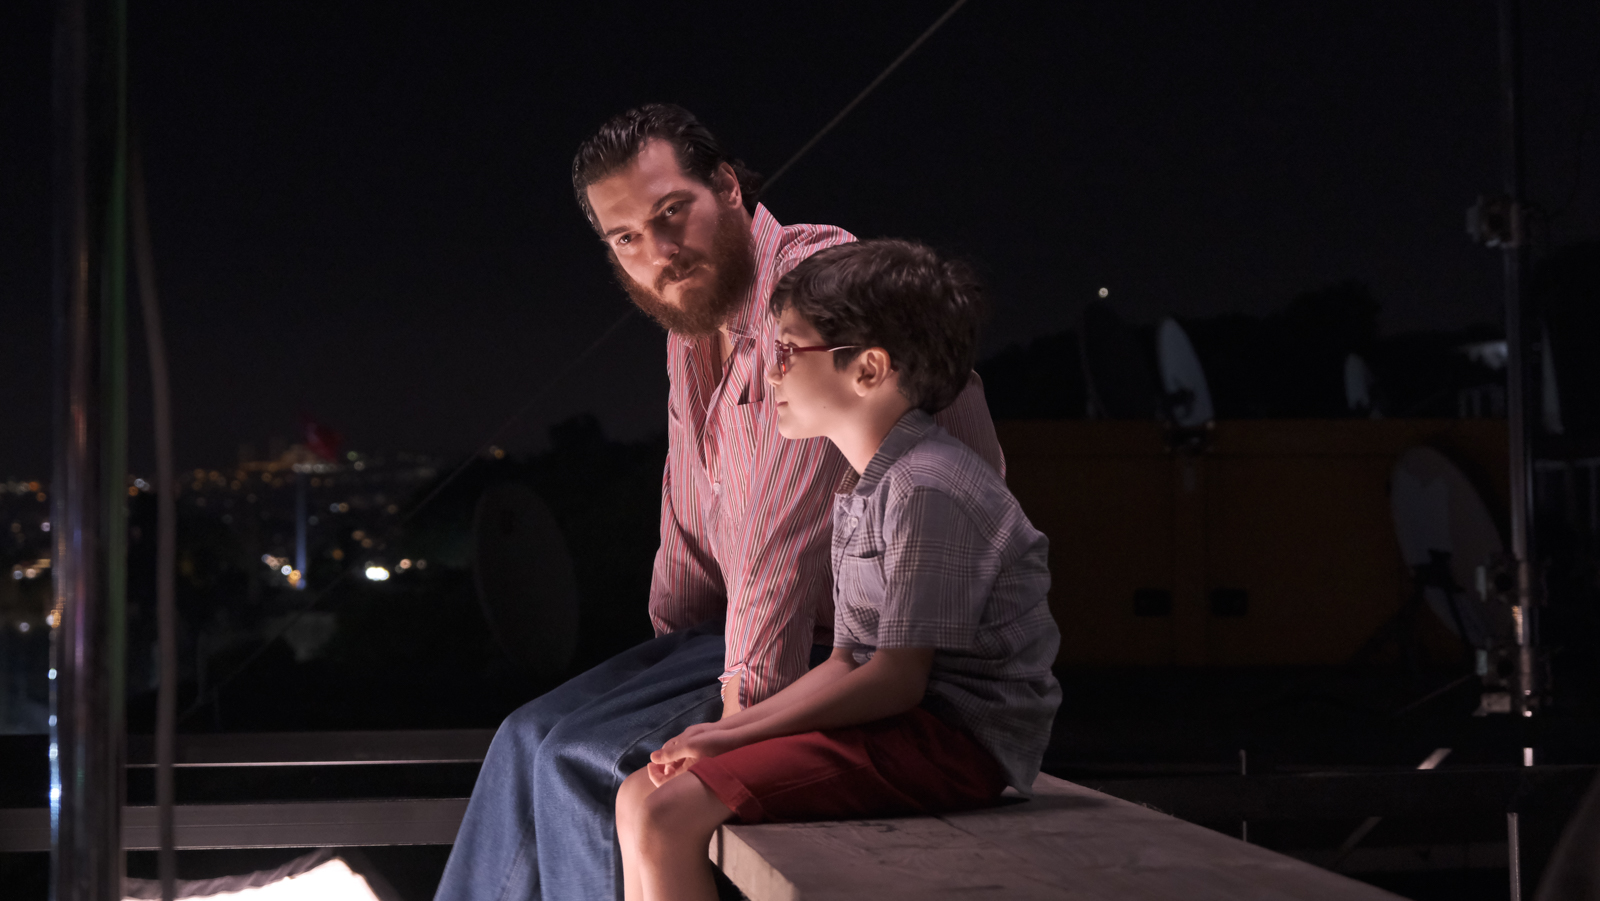 The 8 year-old-boy Ali will cause Mehmet to face his own childhood and past